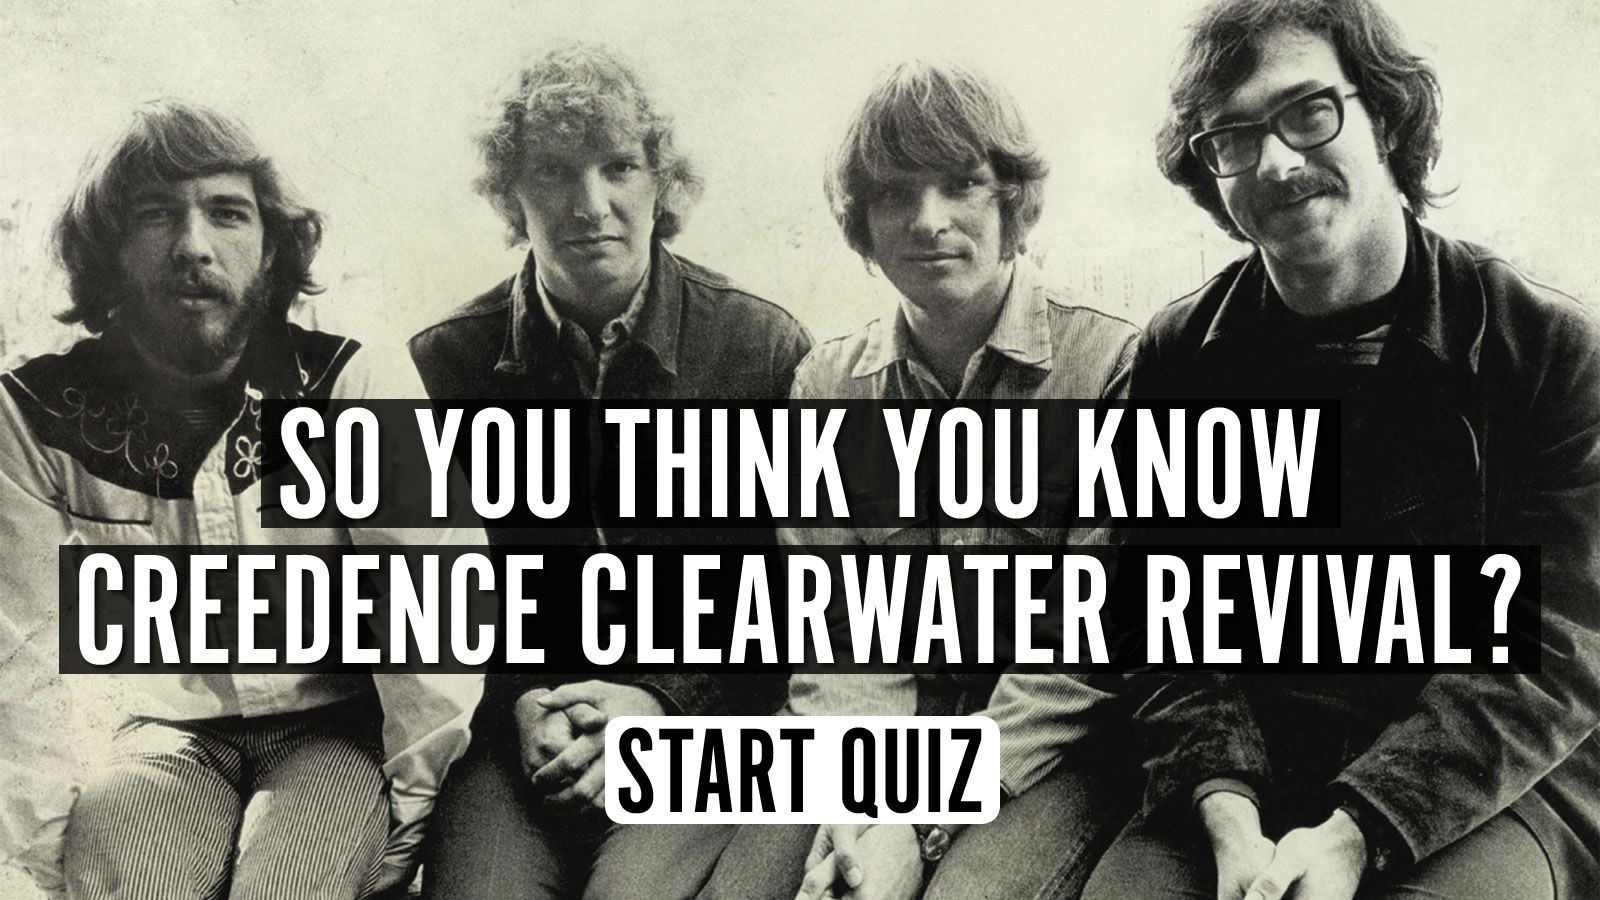 Think You Know Creedence Clearwater Revival